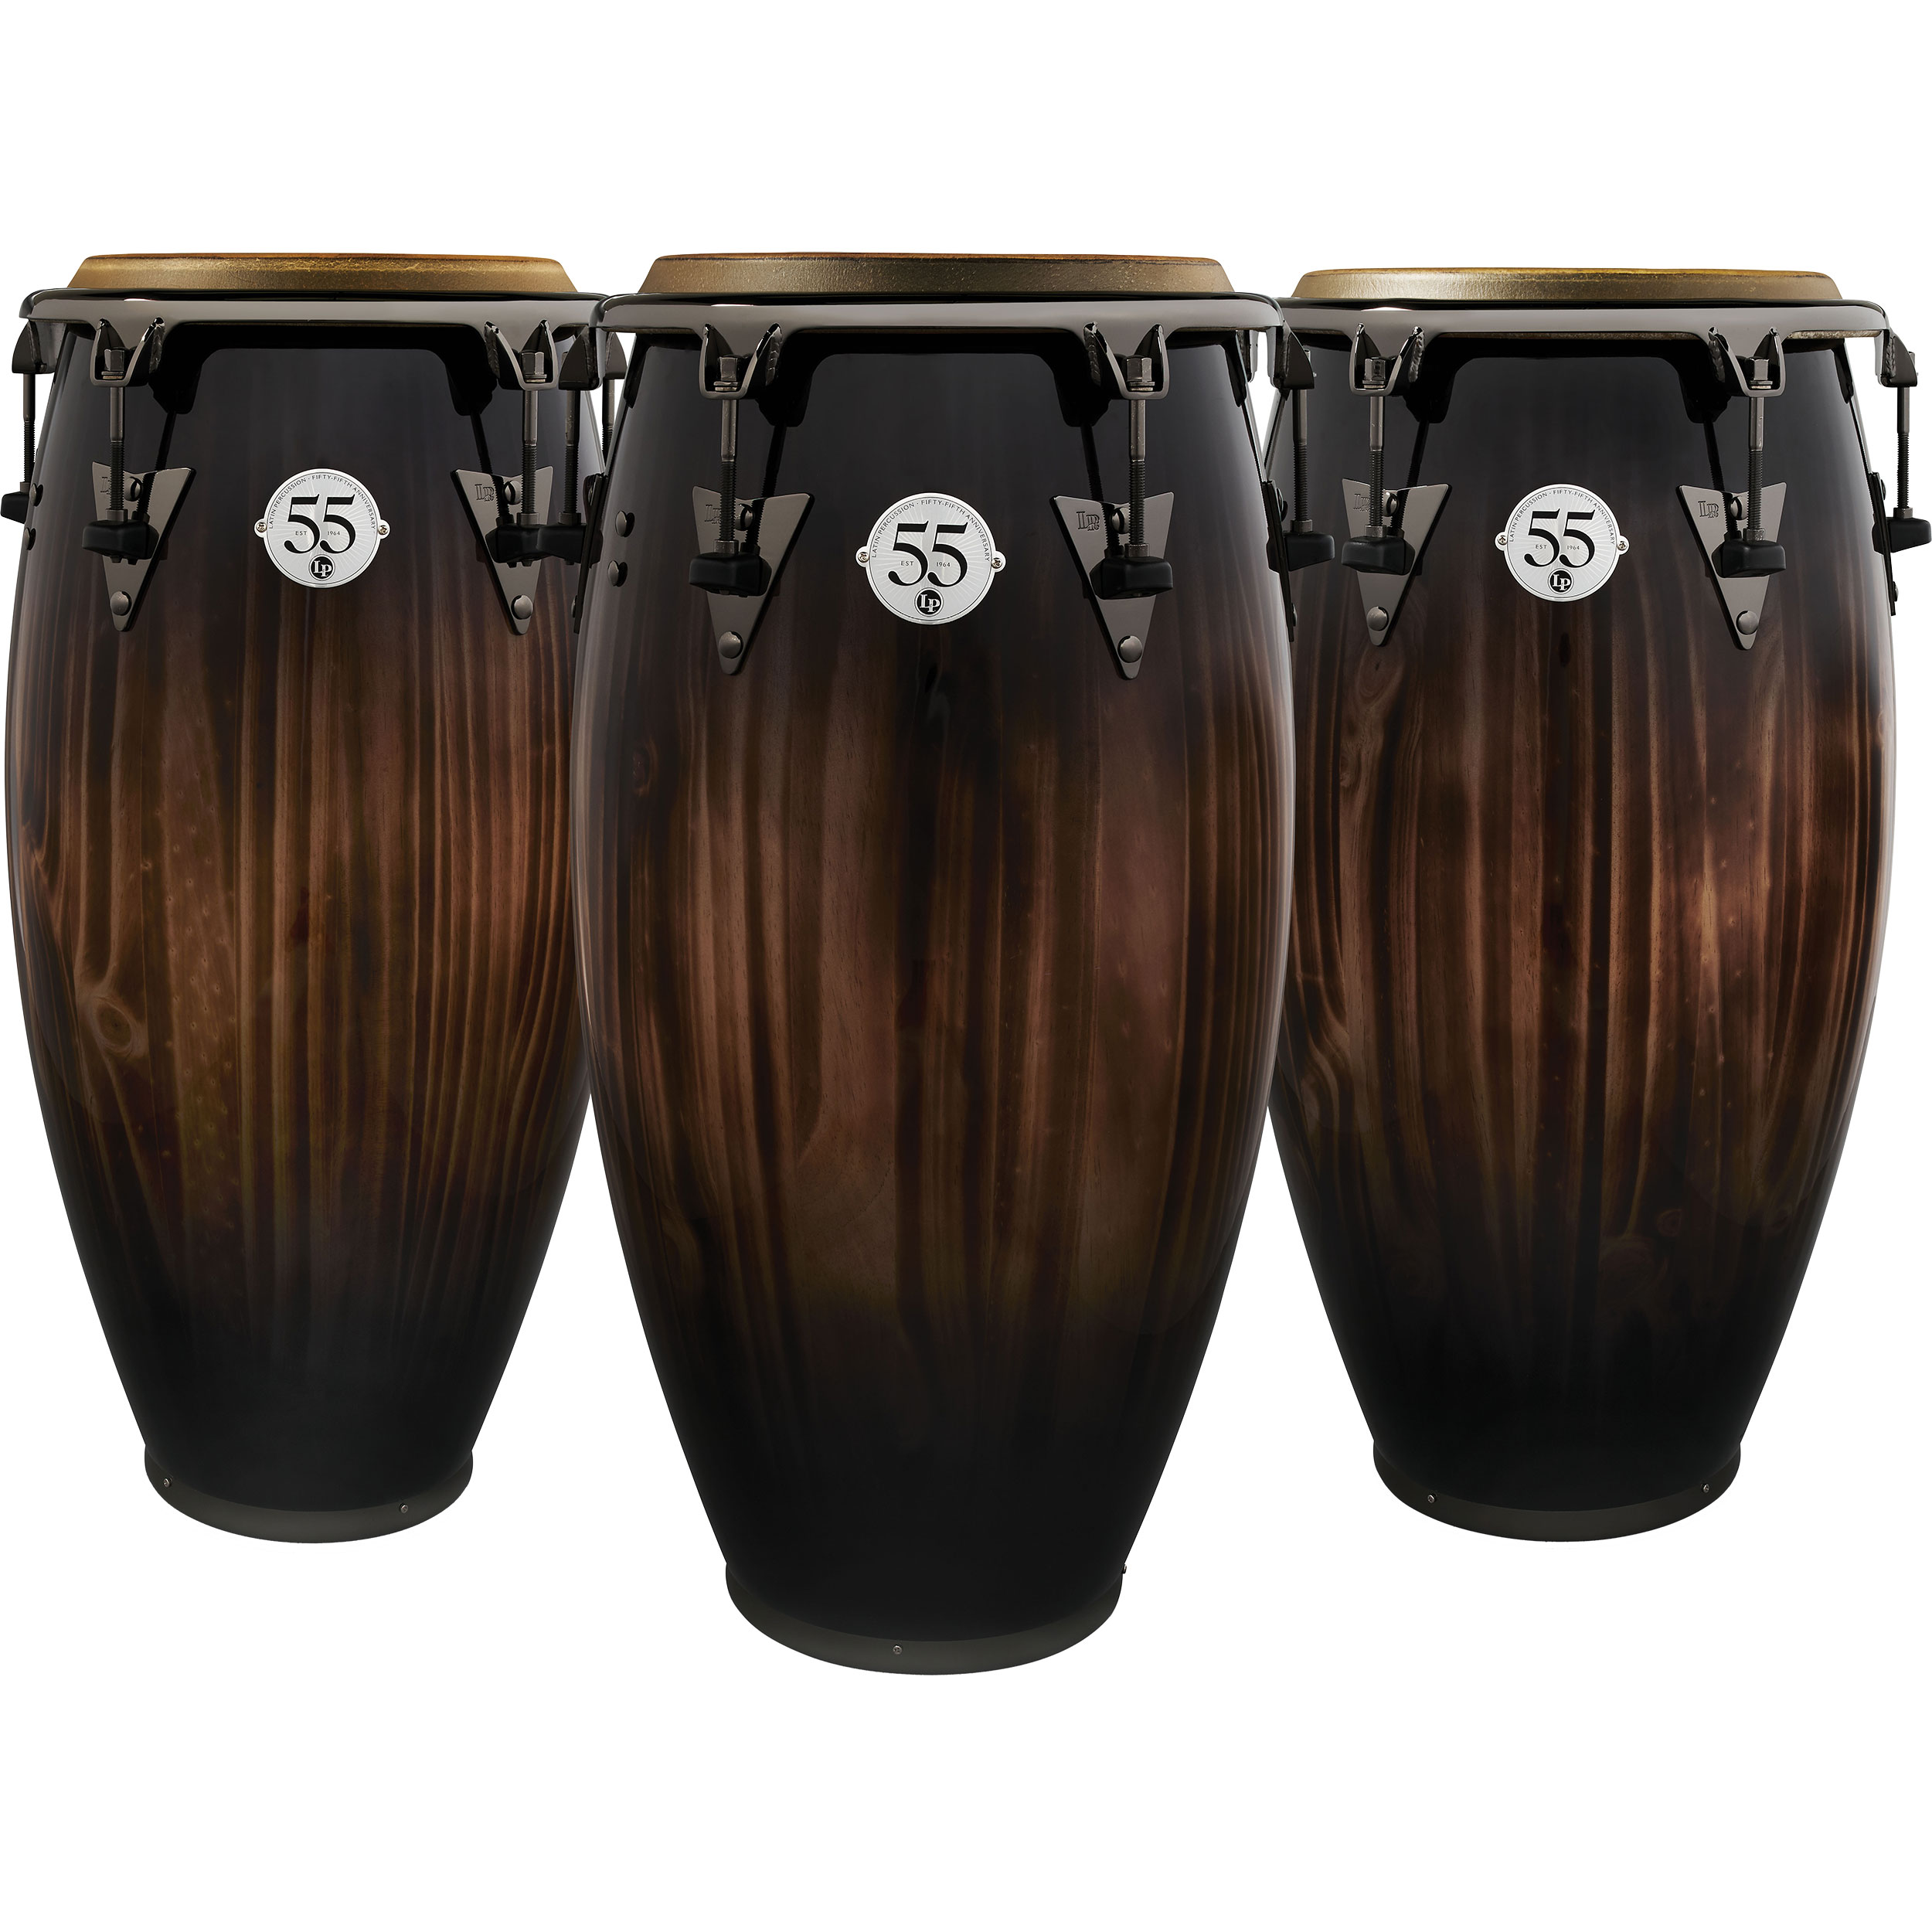 LP 55th Anniversary 3-Piece Conga Set in Candy Black Fade with Black Nickel Hardware